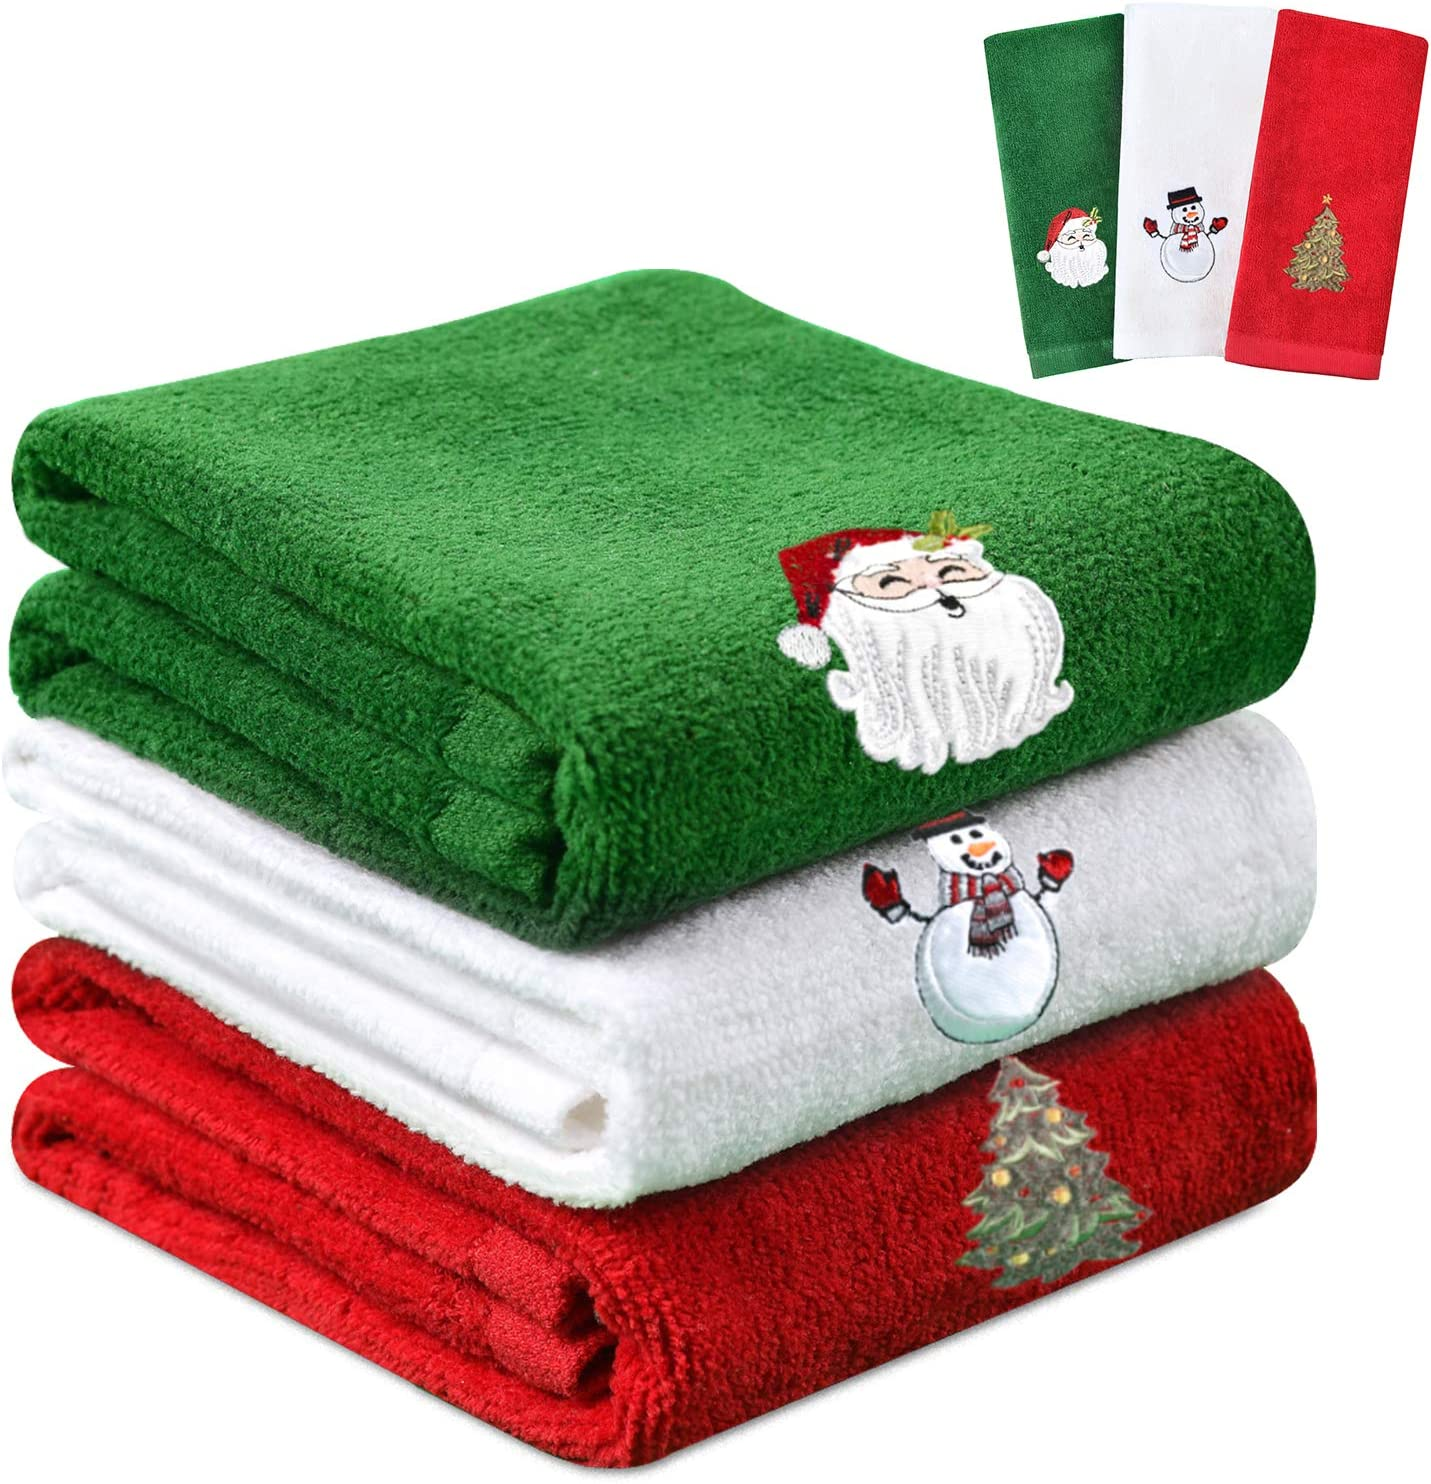 Amazon Com Yuntec Christmas Hand Towels Washcloths 100 Cotton Bathroom Kitchen Towels 18 X 12 Christmas Holiday Dish Towels For Drying Cleaning Cooking And Decoration Red White Green 3 Sets Kitchen Dining